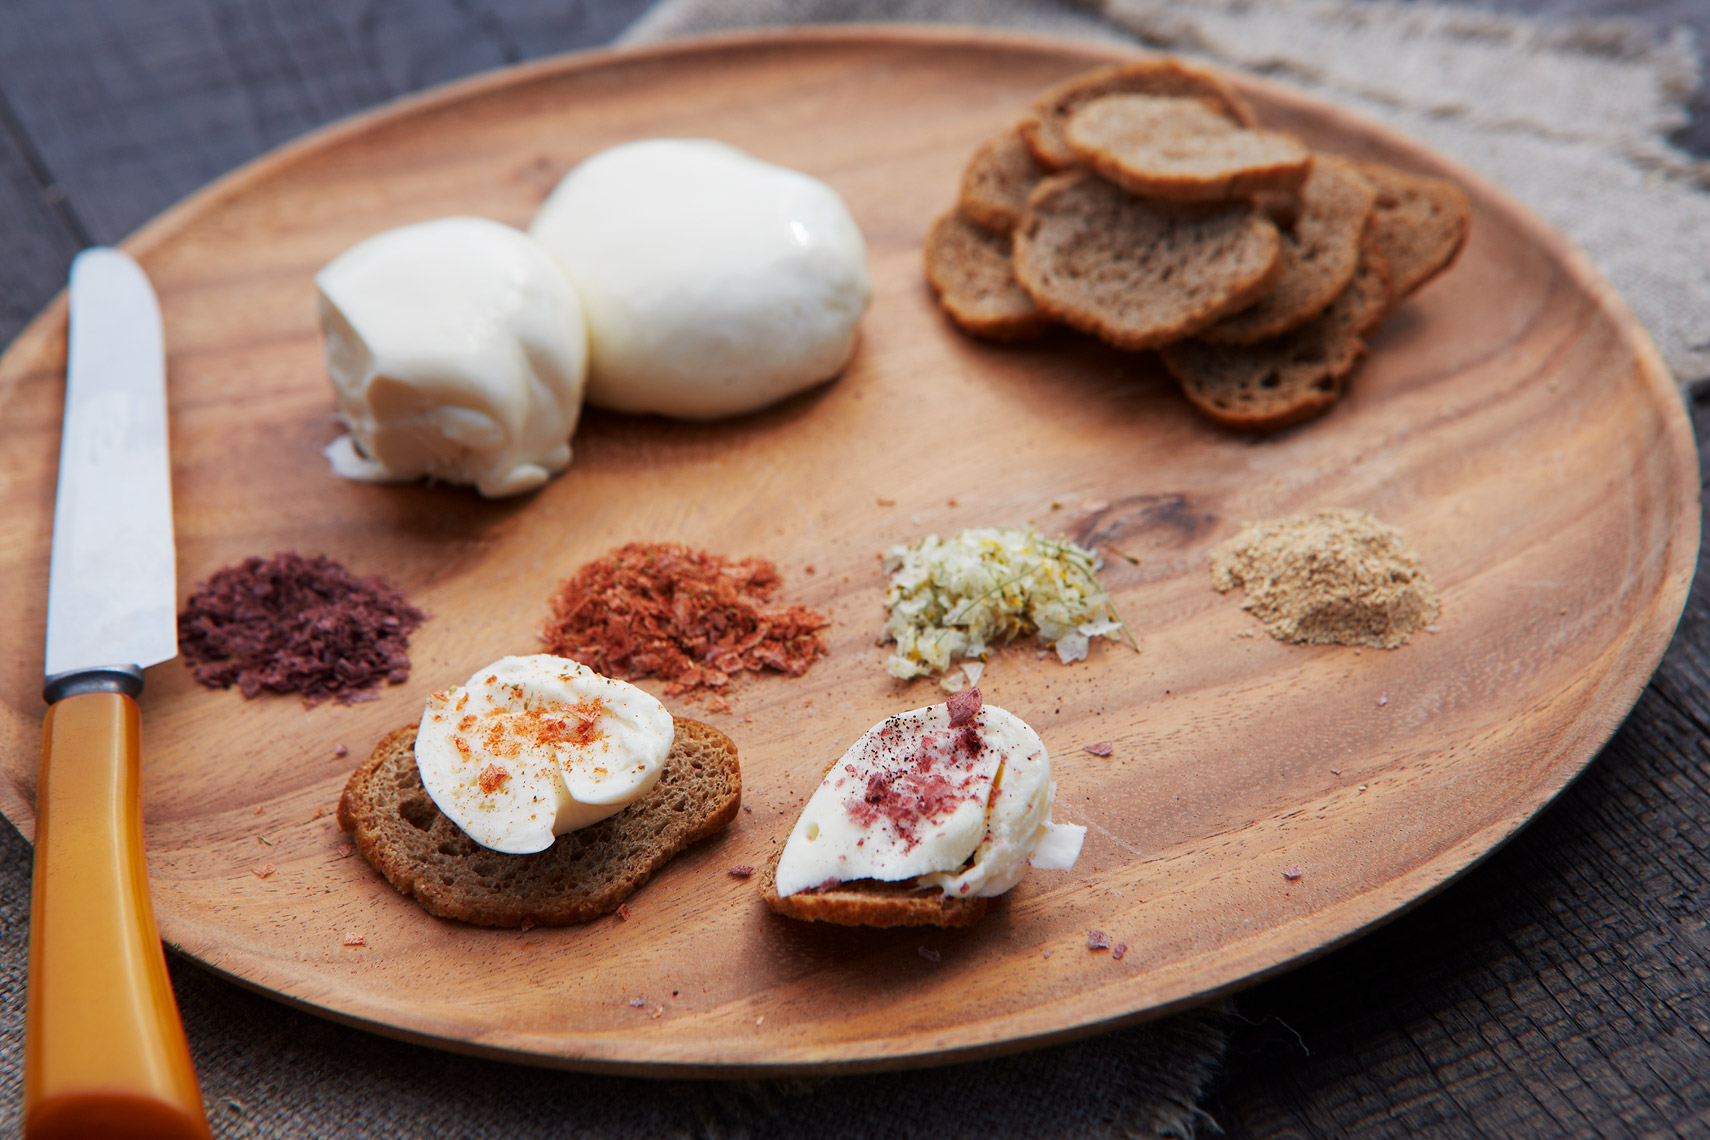 AlanCampbellPhotography, fresh cheeses and salts appetizer